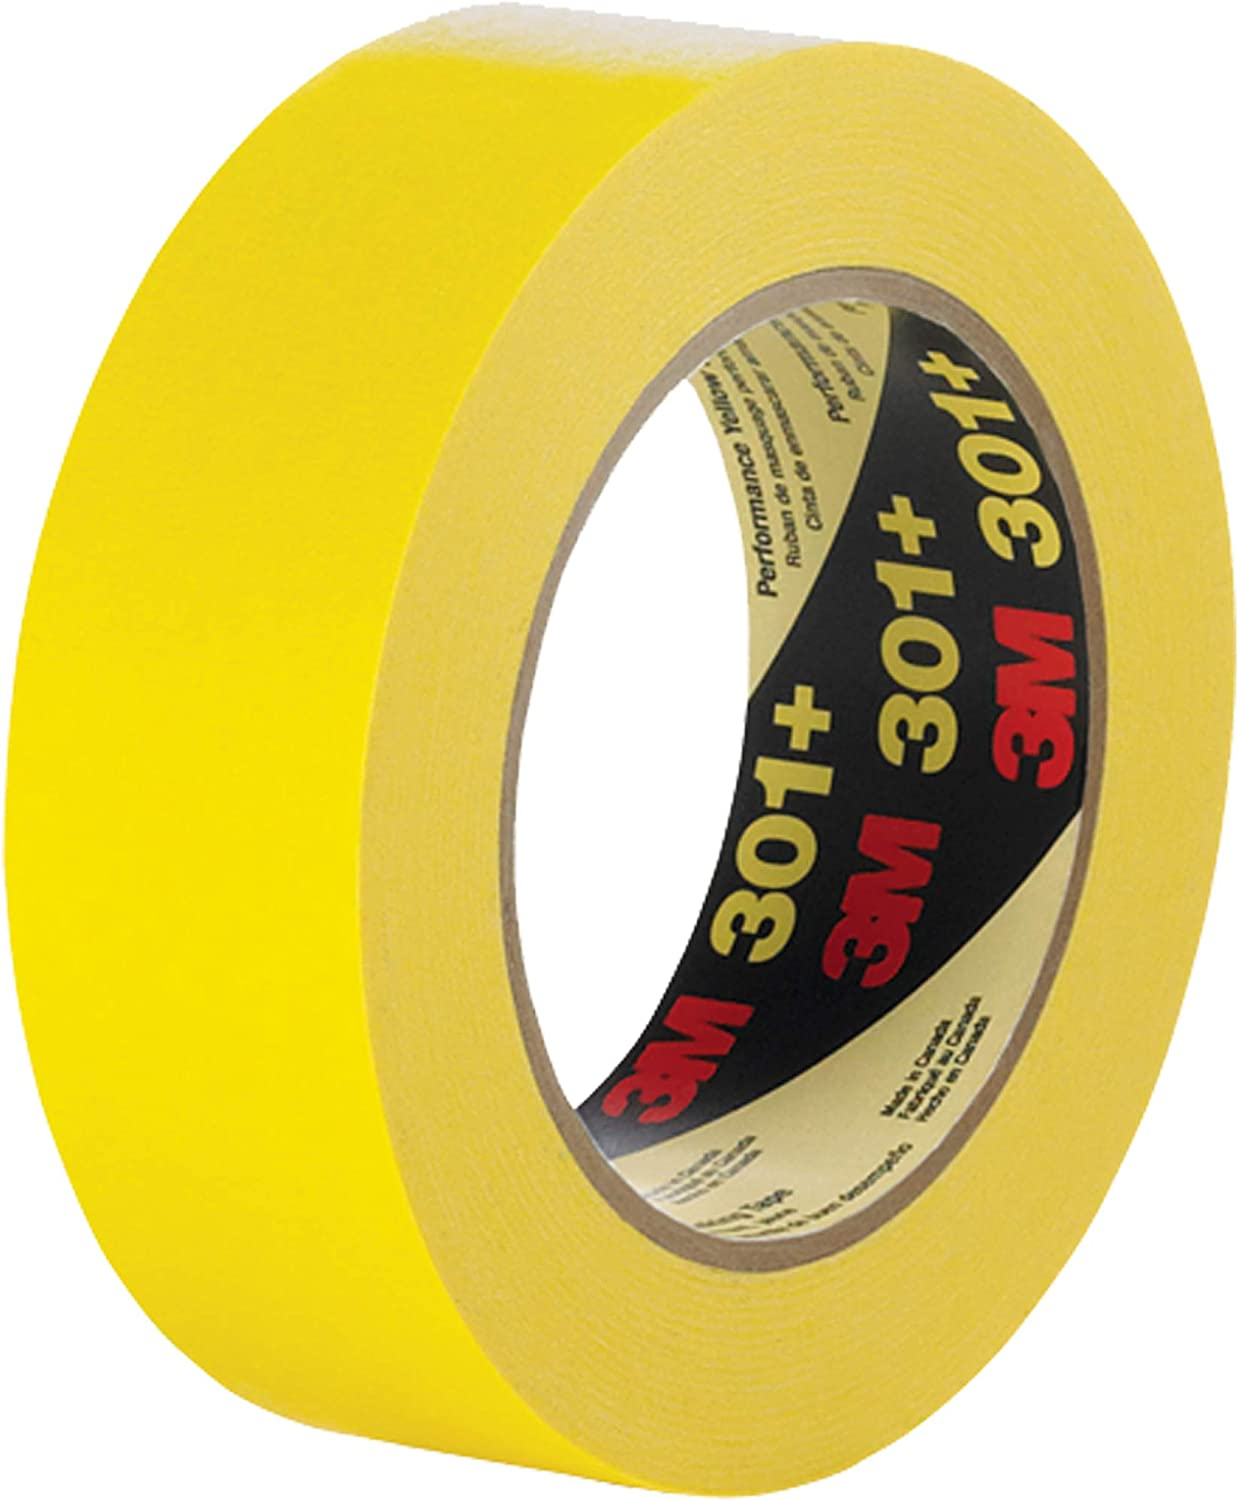 3M 301+ Yellow Max 60% OFF Masking Painter's Tape Packaging Width - mm 24 Max 45% OFF